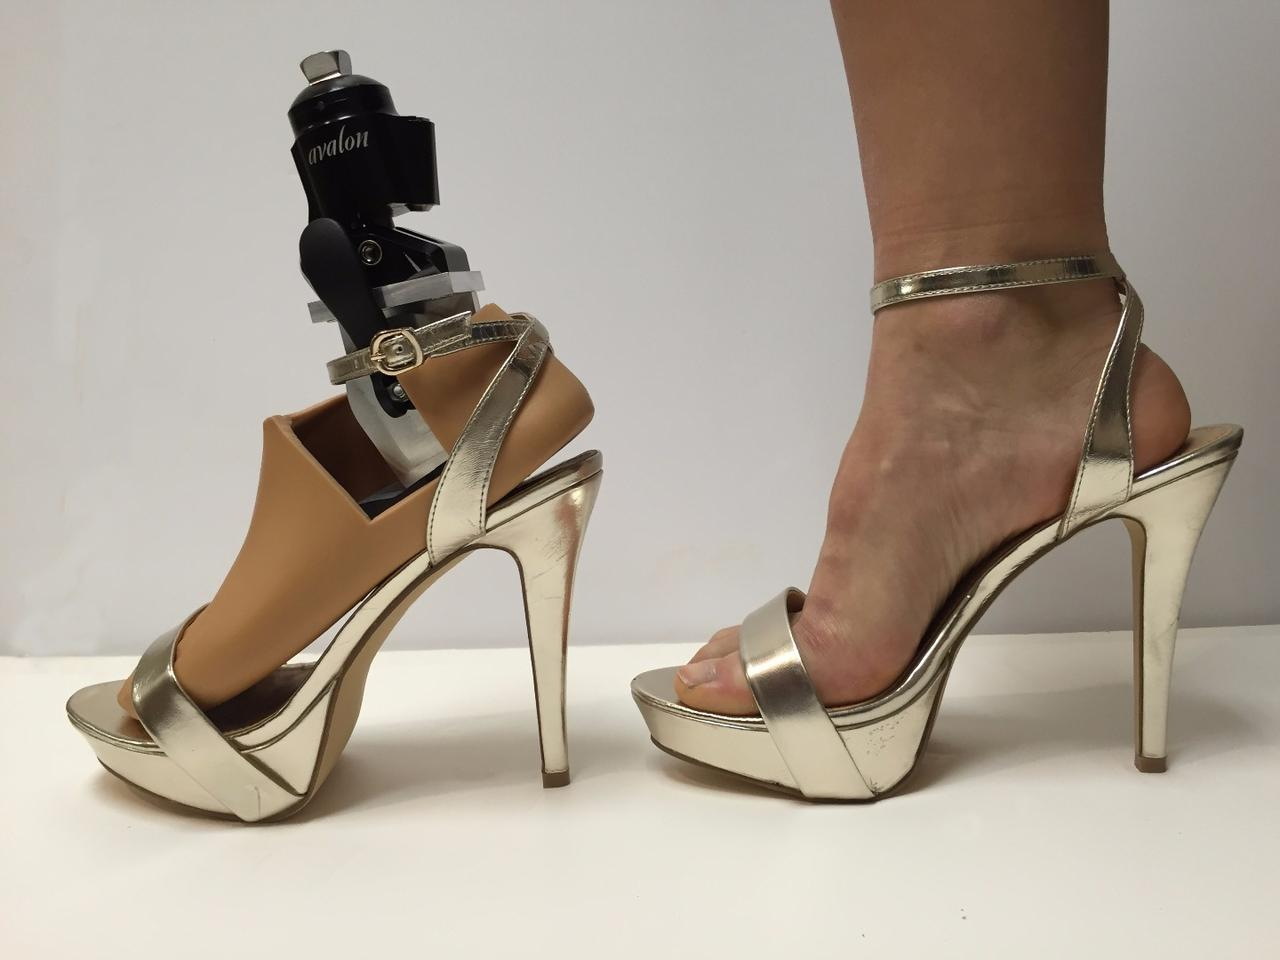 The prosthesis is reported to perform admirably, weighing in at less than 3 lb and supporting weights up to 250 lb